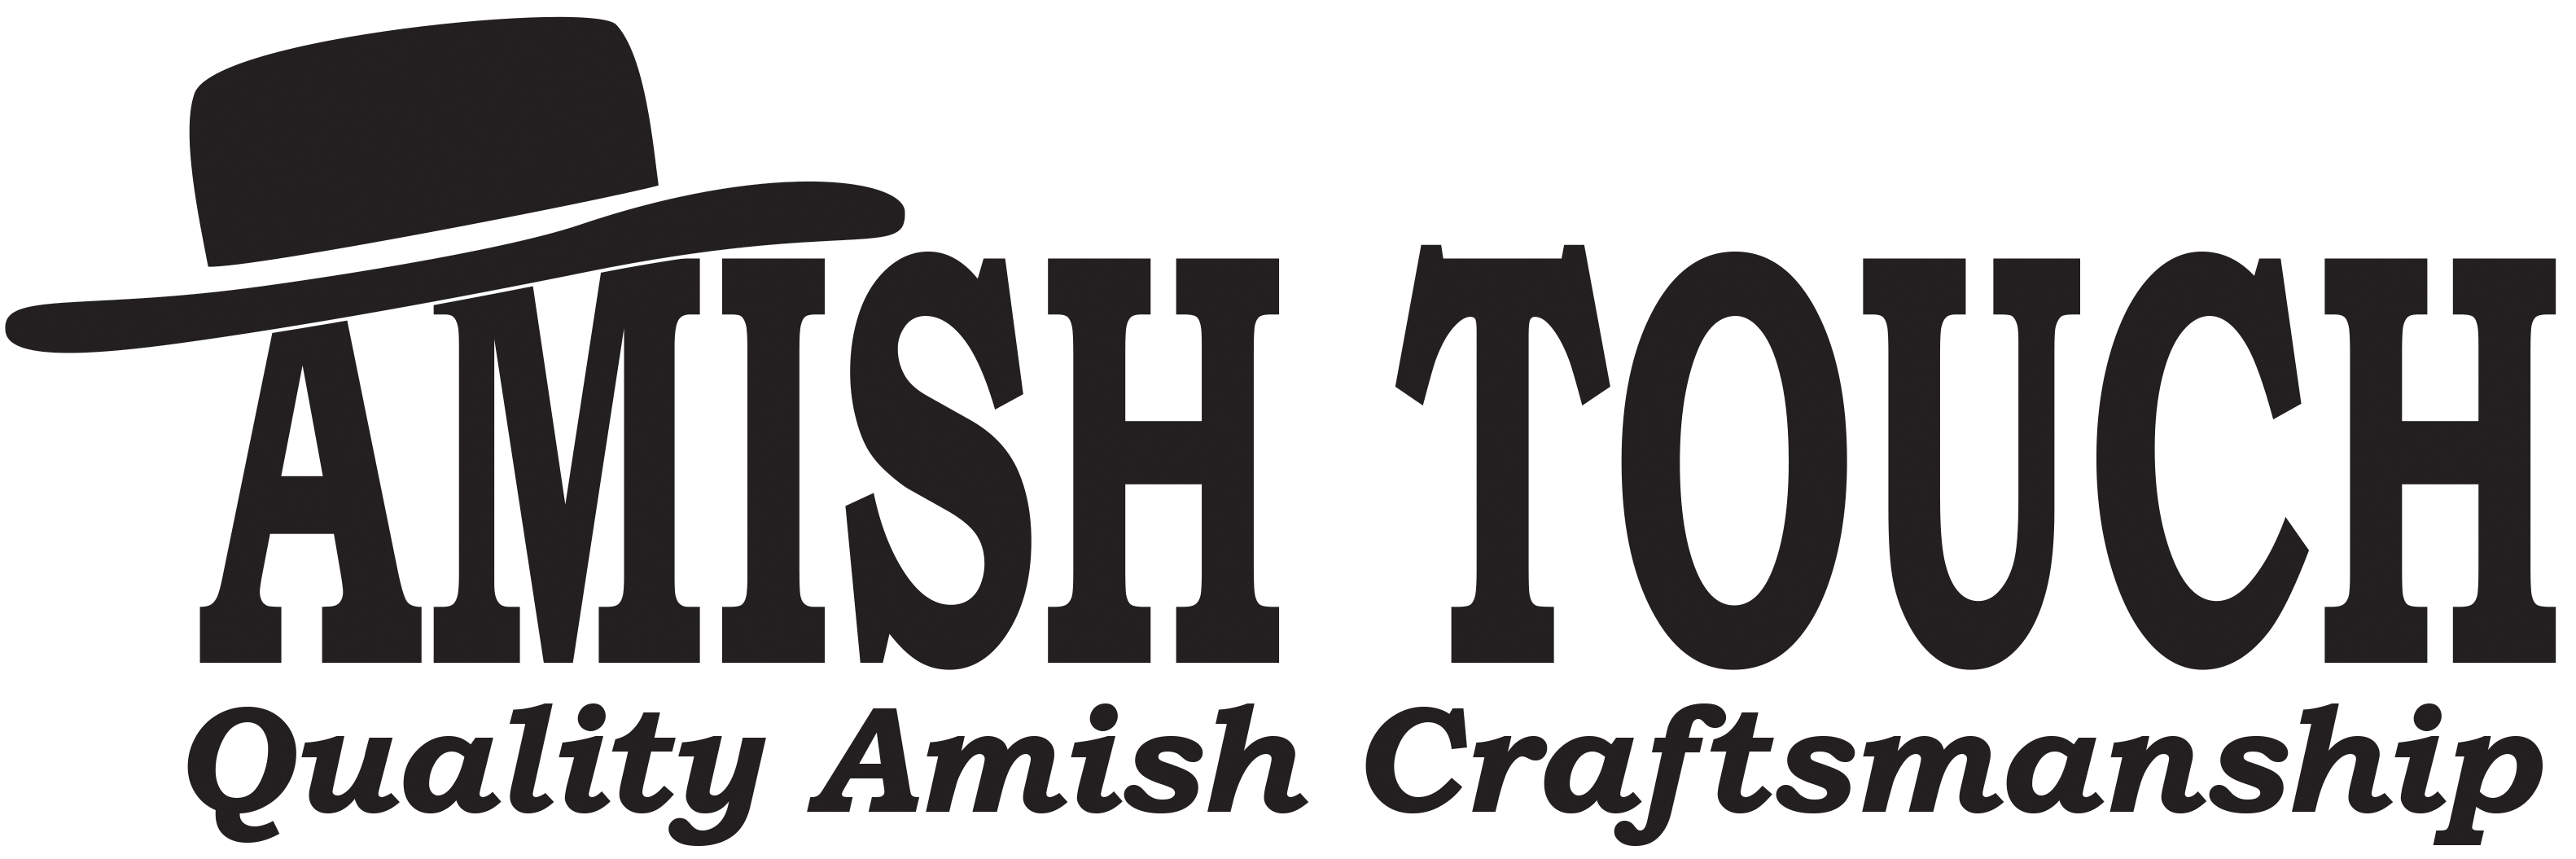 Amish Touch at Tower Golf